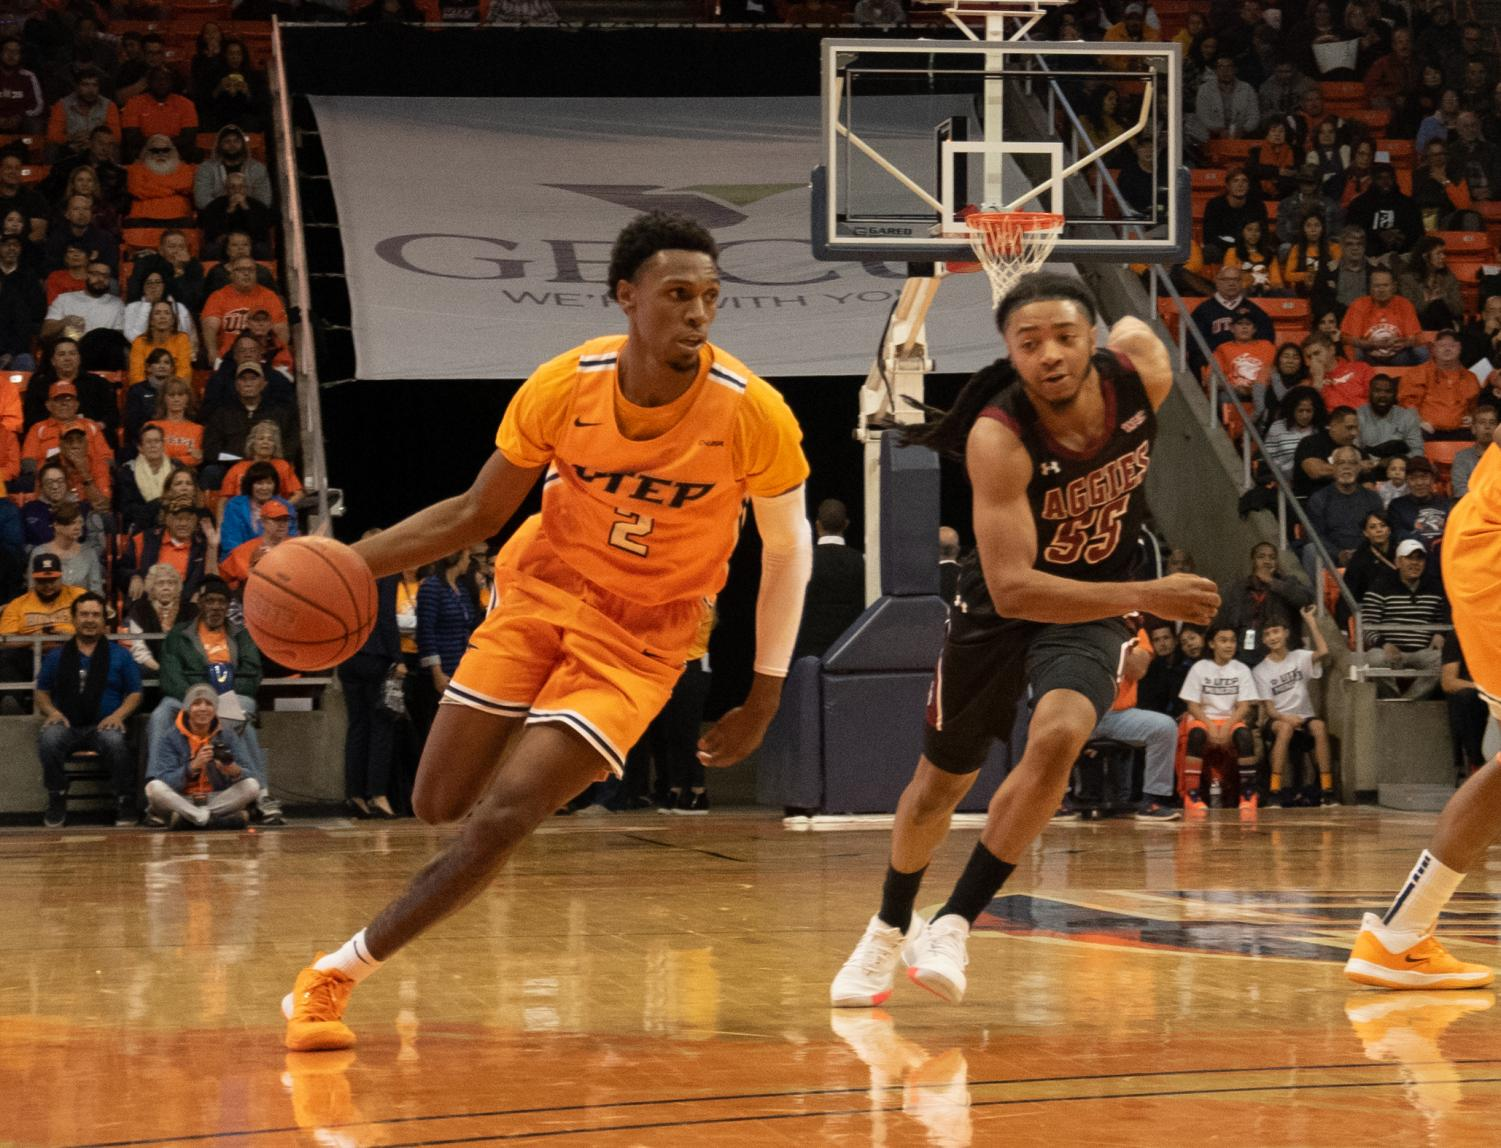 Sophomore guard Jordan Lathon will make his return to the team against Southern Miss.